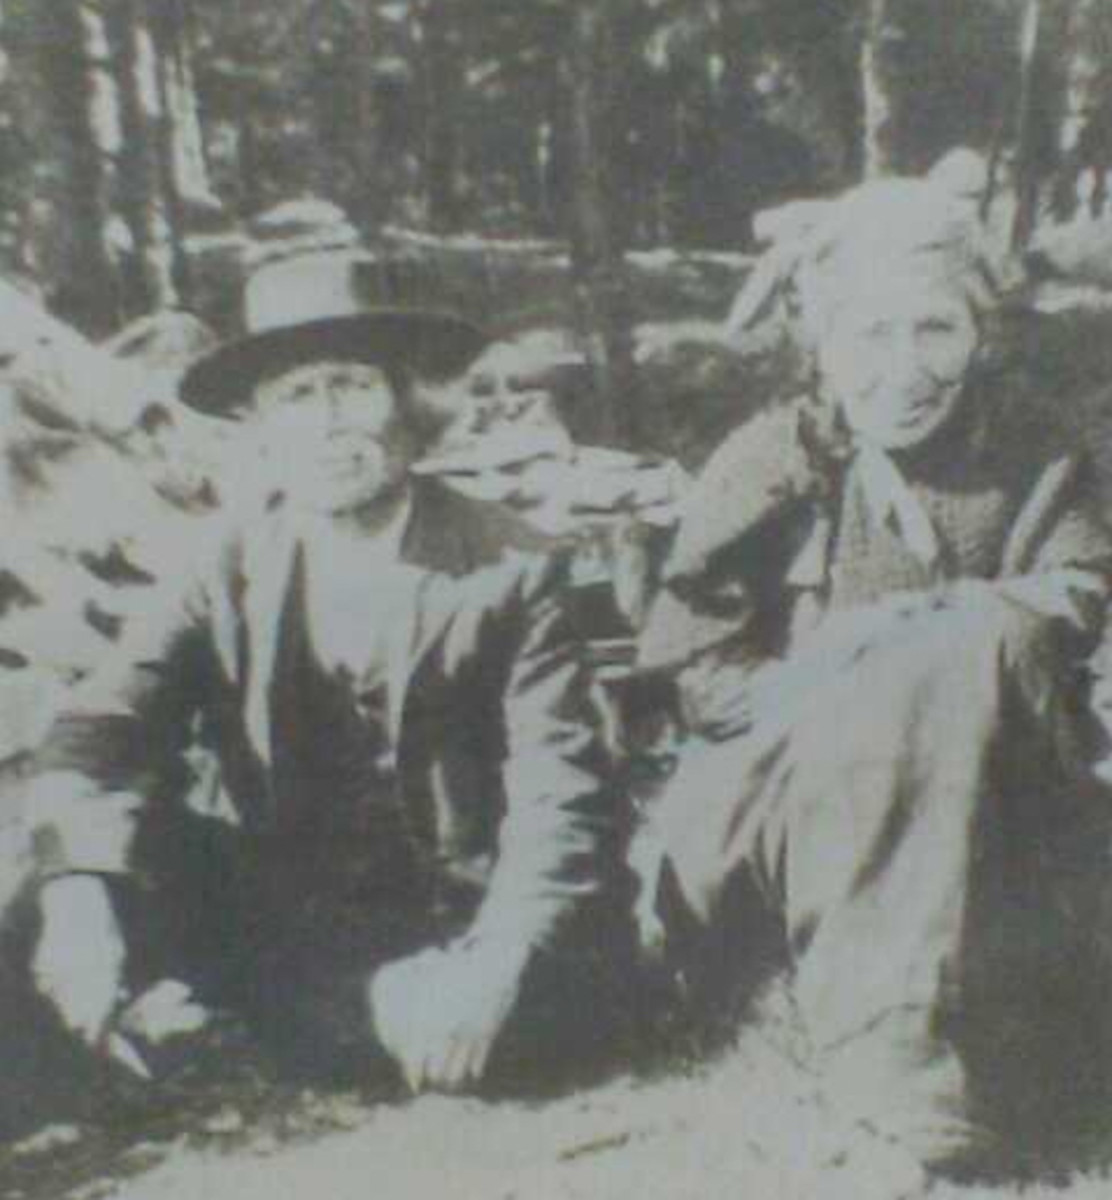 : Carol Reynolds Boyce provided this image of her Beothuk family, her Aunt Madelaine on the right and her Uncle Soolian, who was also known at William Prosper or William Sulien, on the left. Her uncle died at the age of 101 in the 1920s, at Truro Reservation, Nova Scotia.